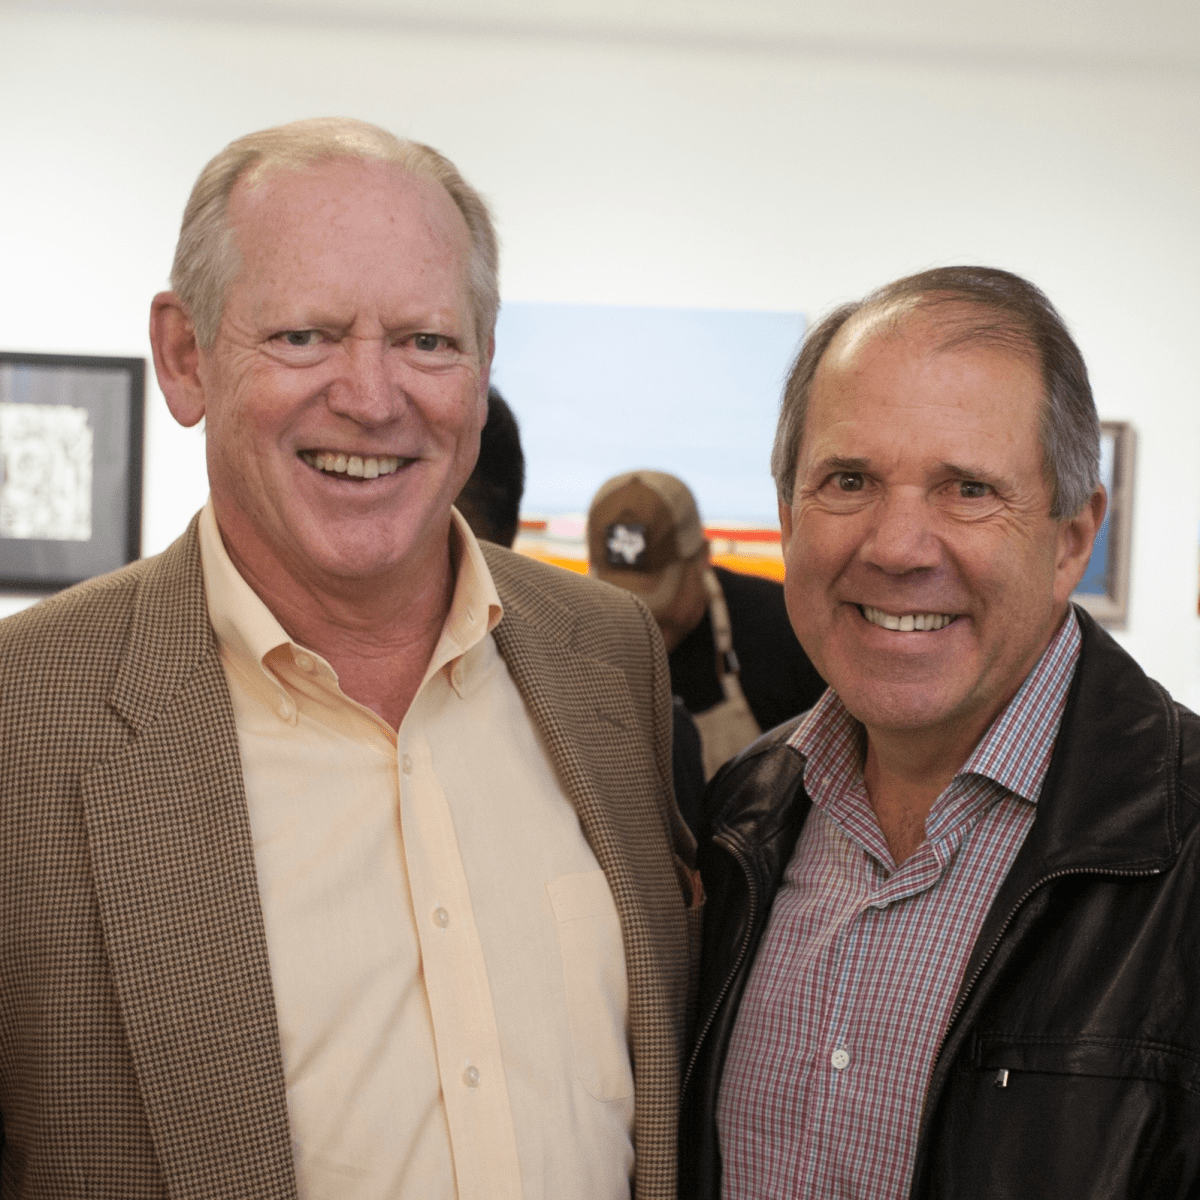 Jack Sweeney and Ric Campo at Art on the Avenue 2017